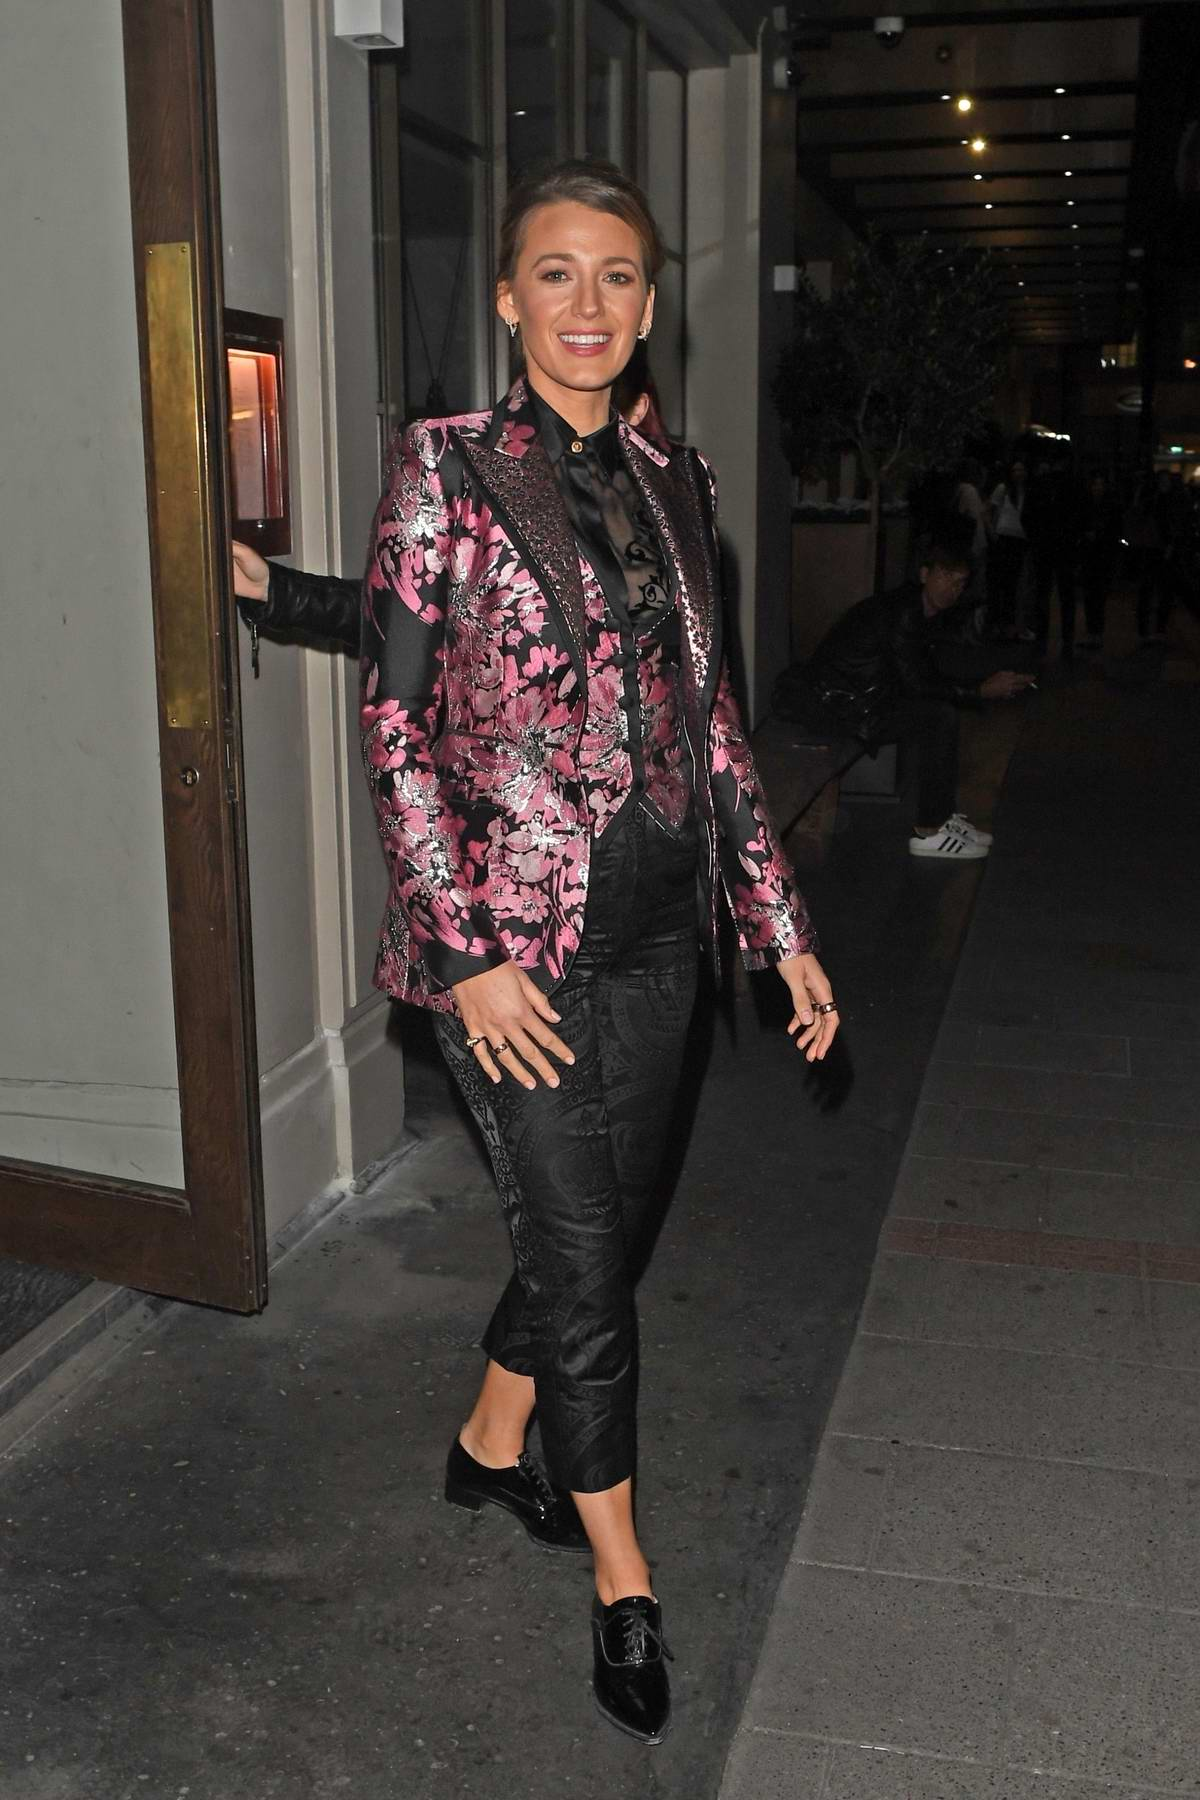 Blake Lively wore a pink and black patterned suit while out in Mayfair, London, UK